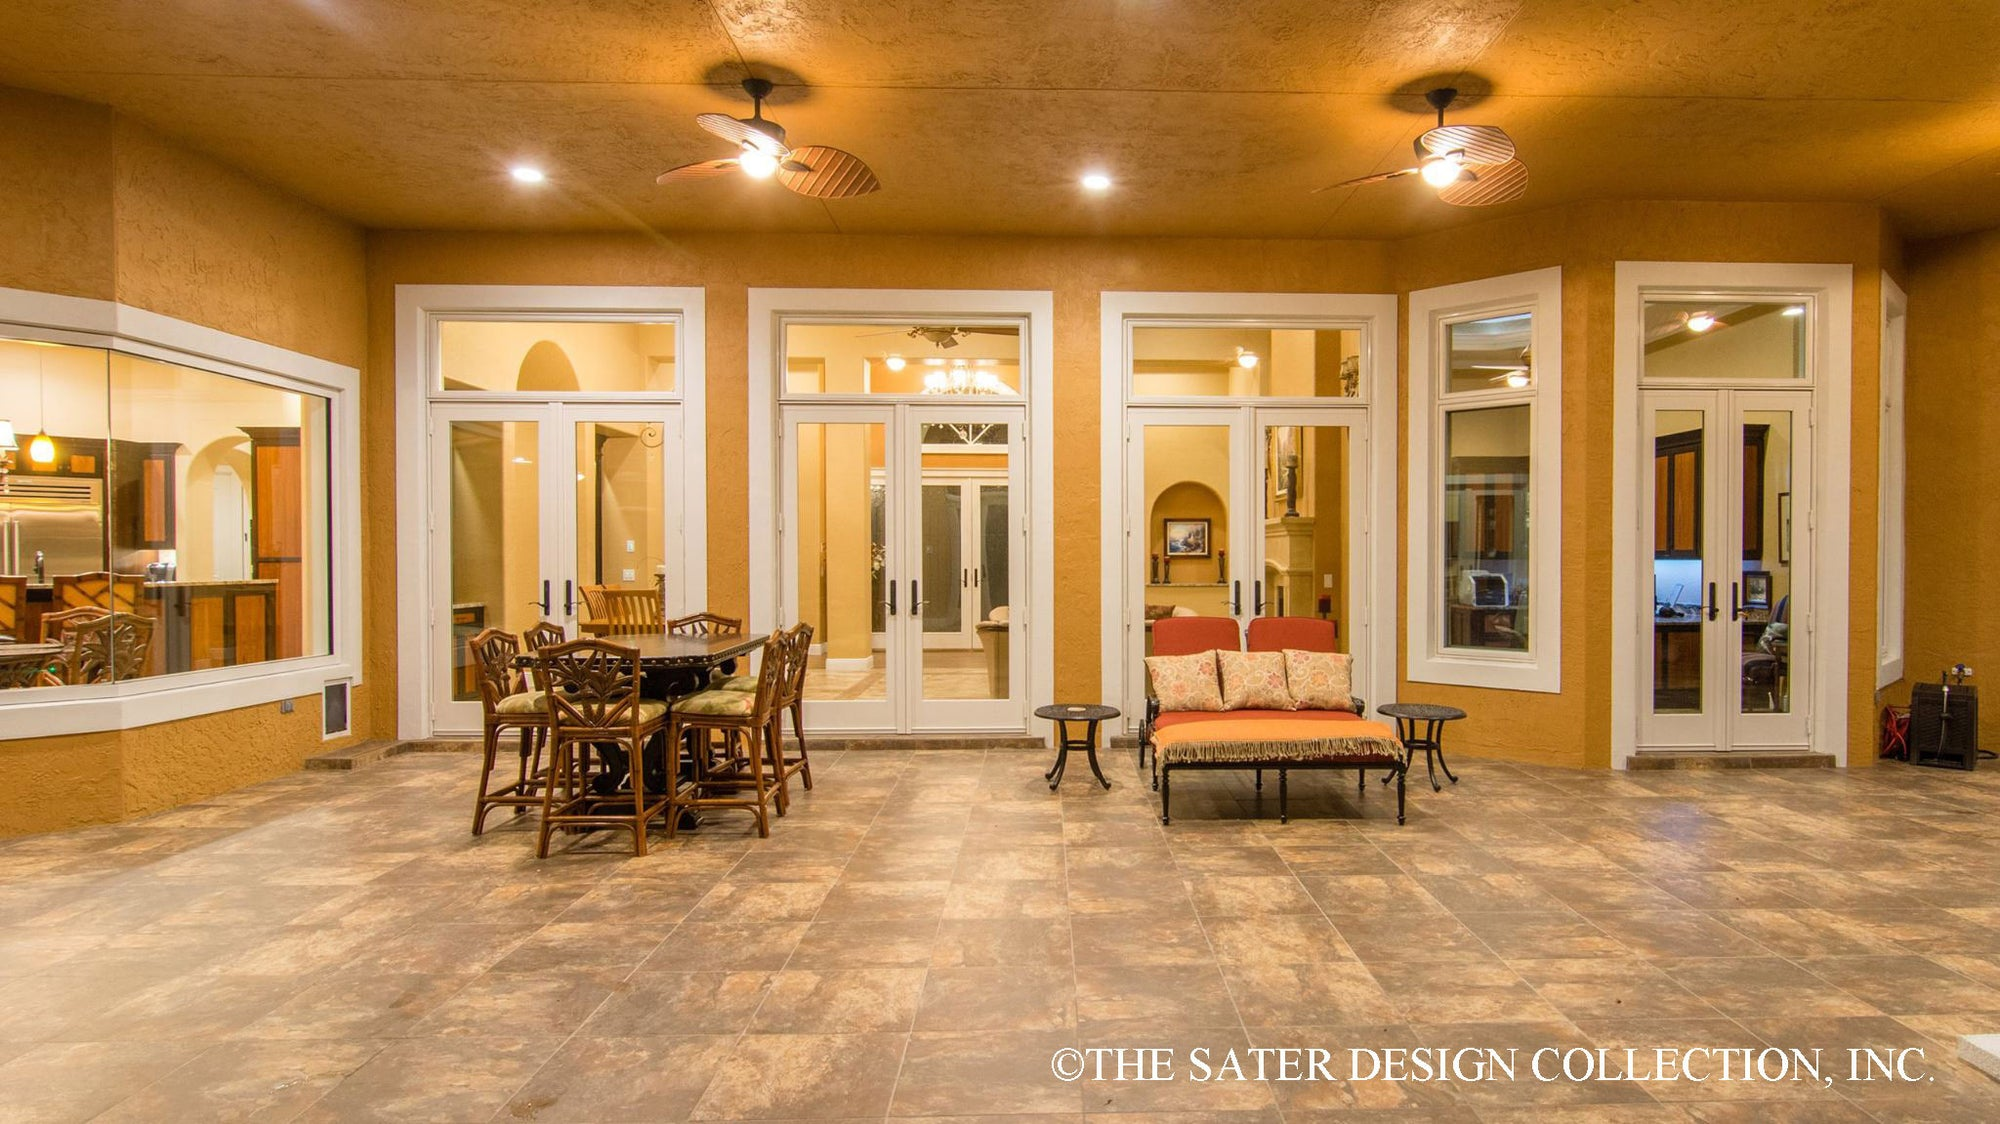 The Sater Design Collection house plan plantation pine road | sater design collection